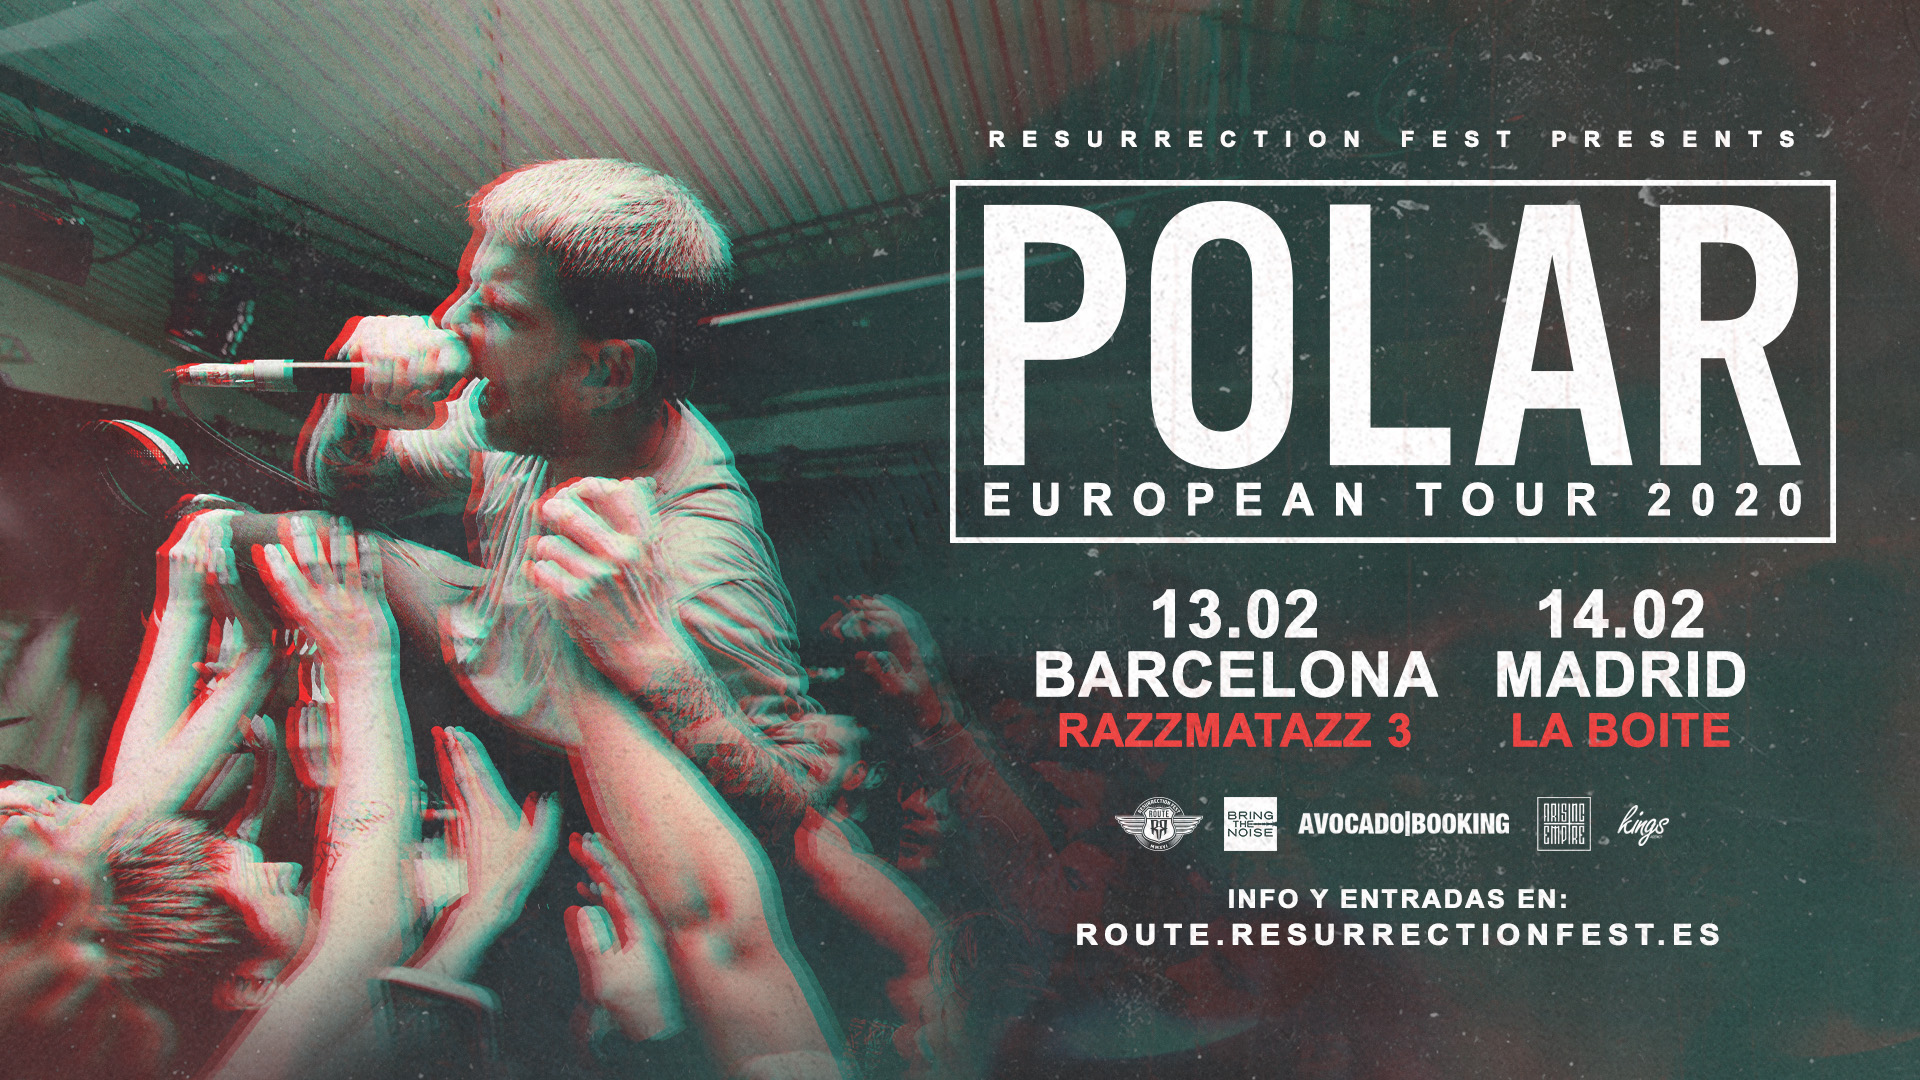 Route Resurrection Fest 2020 - Polar - Event